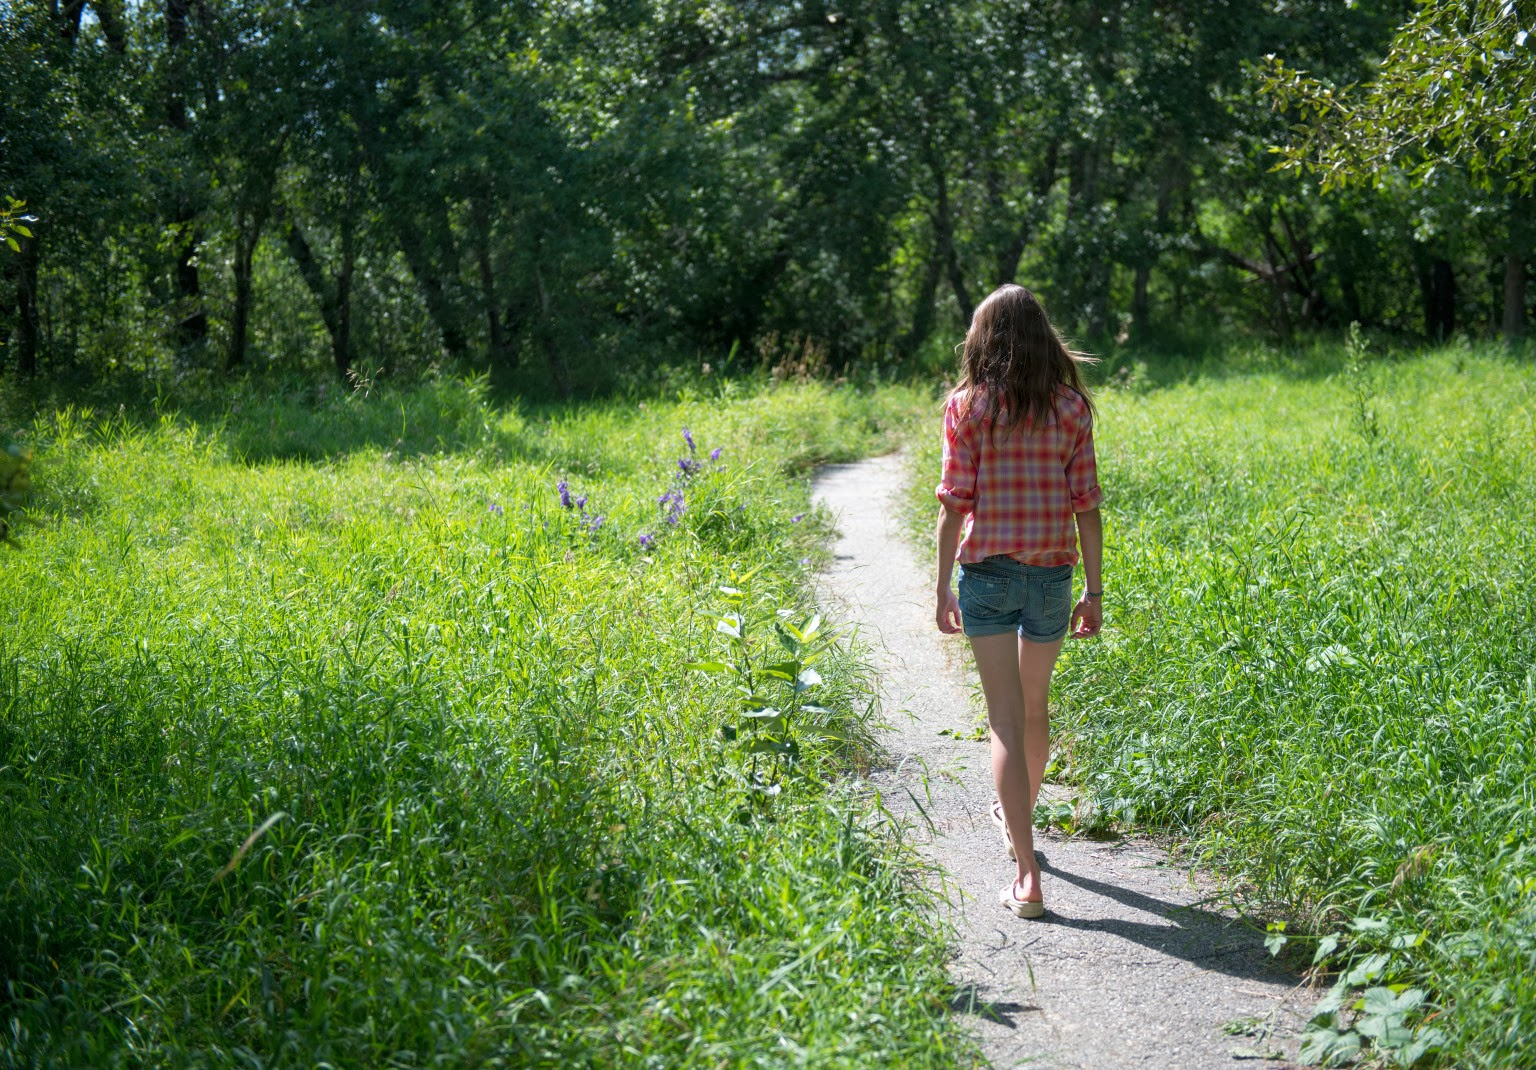 Walking Into Well-Being: The Power of The Gratitude Walk